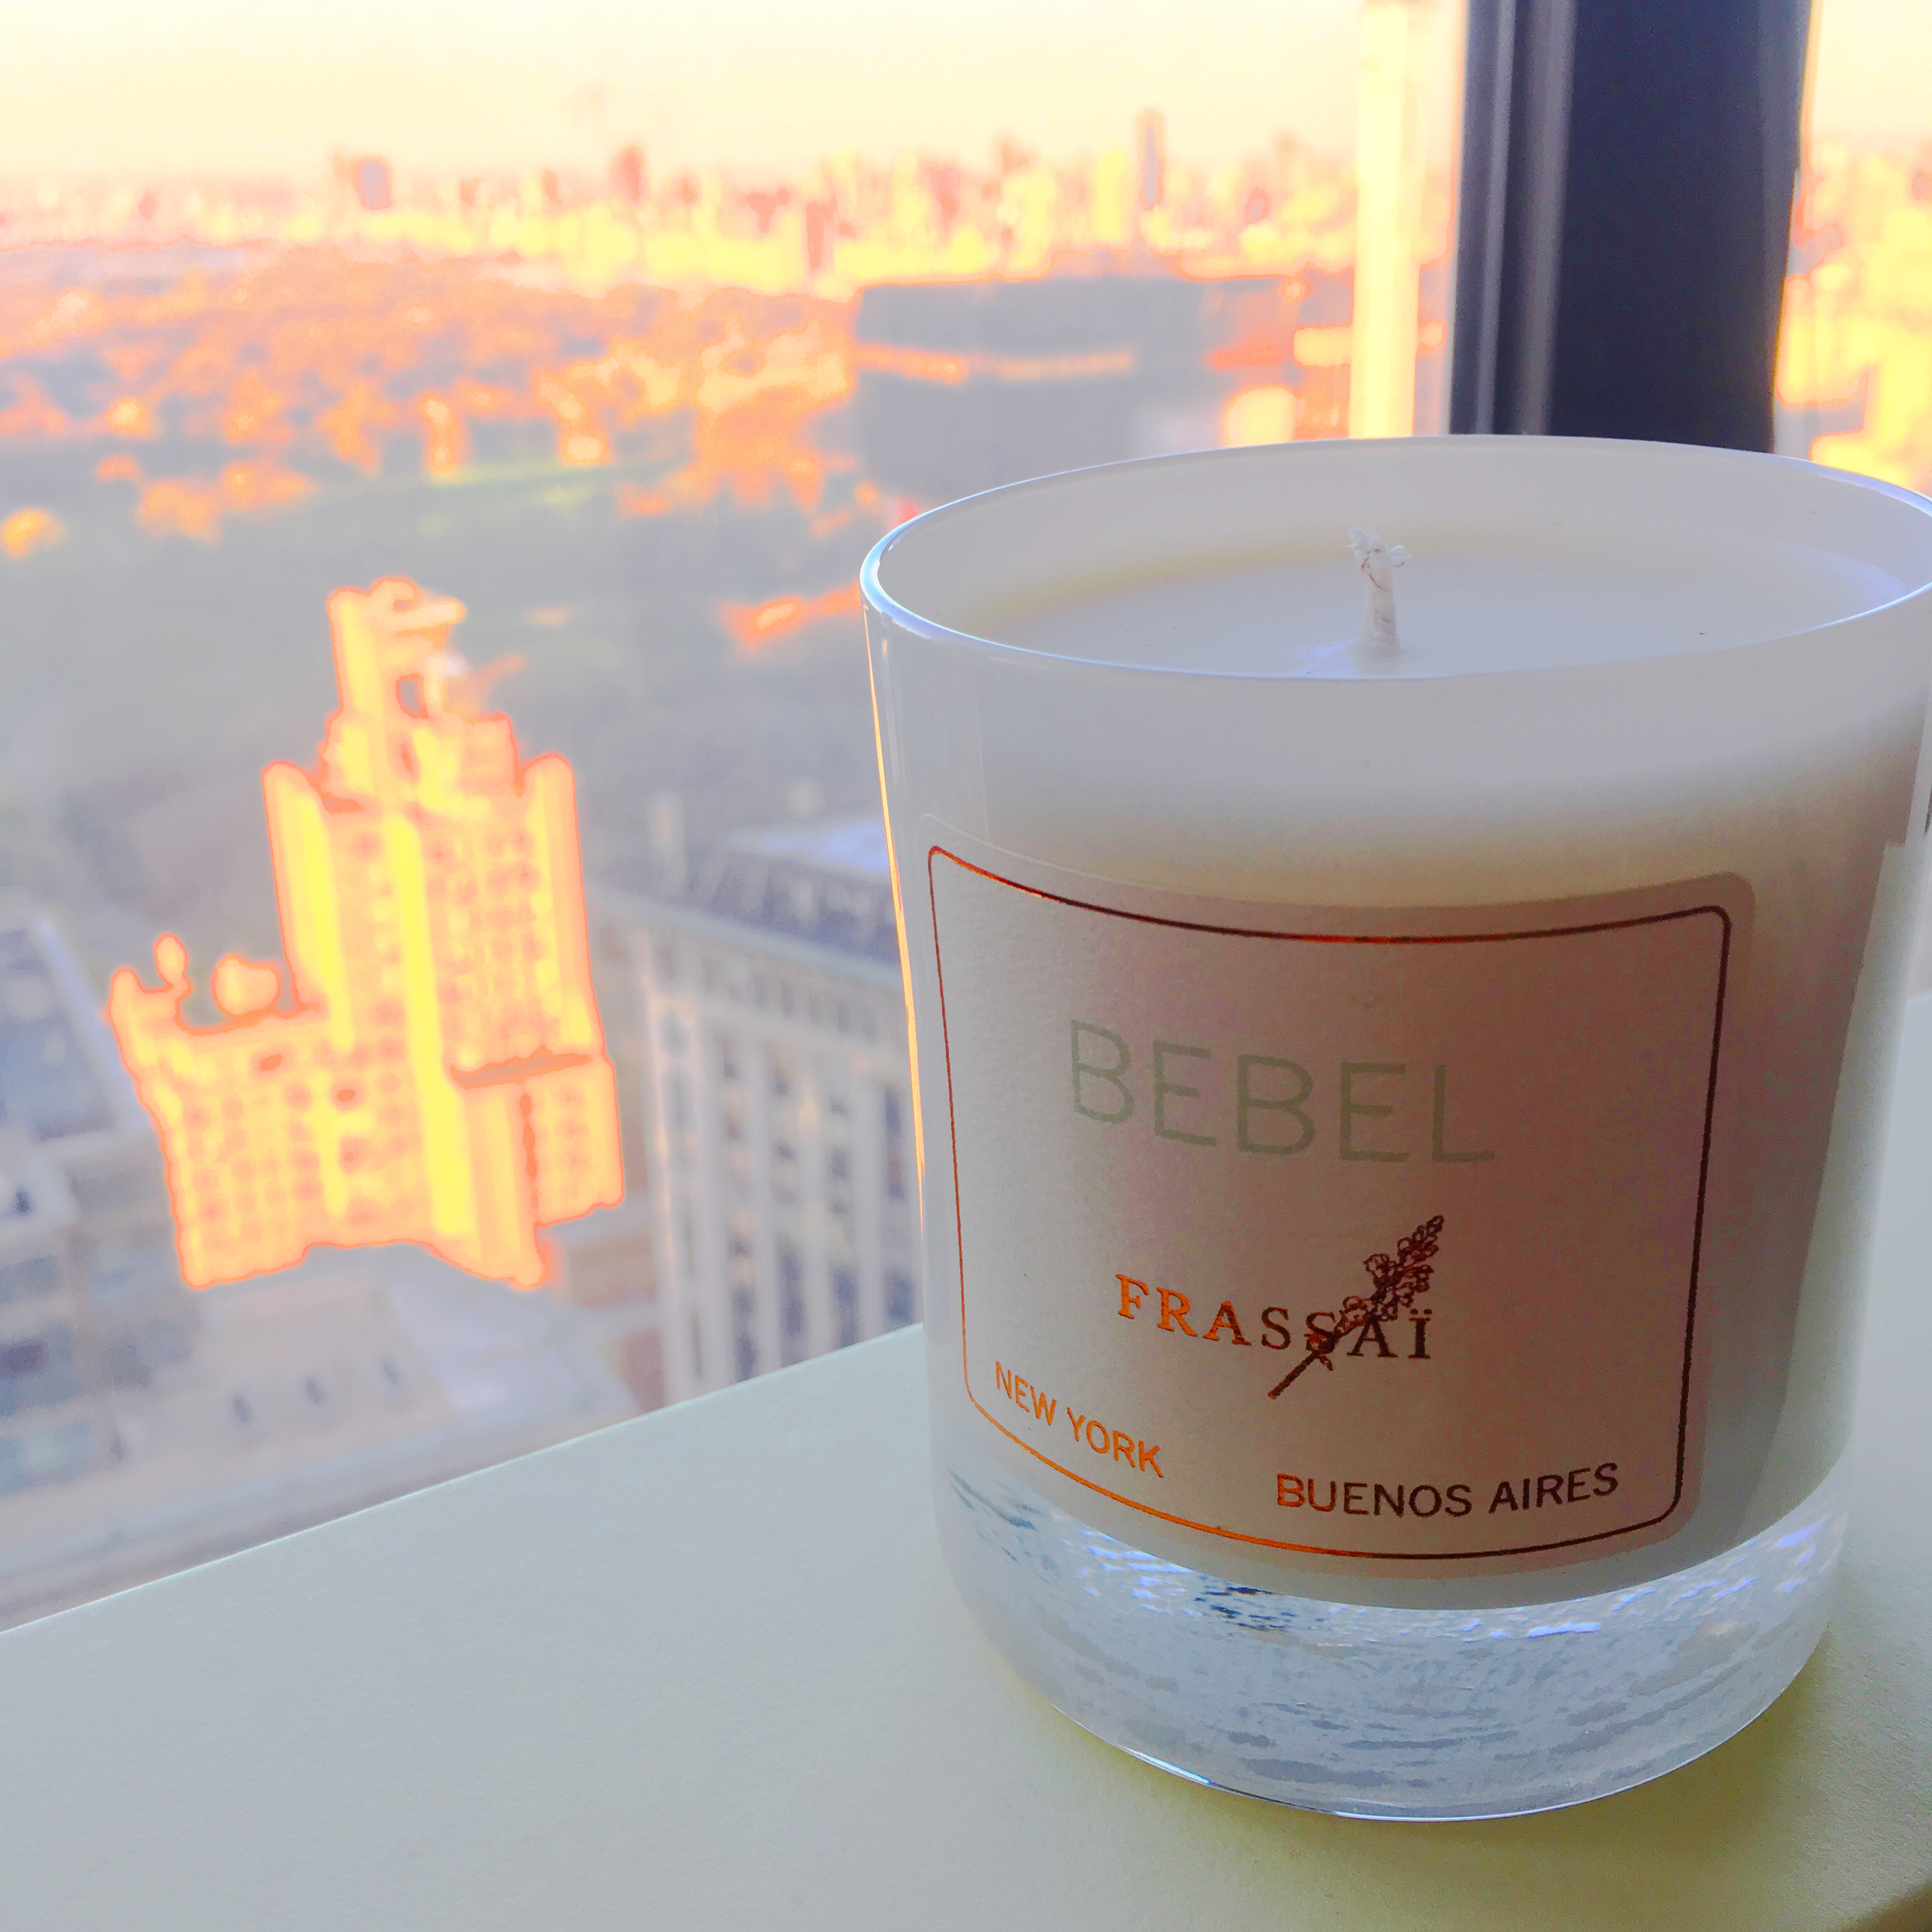 Bebel in NYC - scented candle inspired by the sounds of Brazilian bossa nova